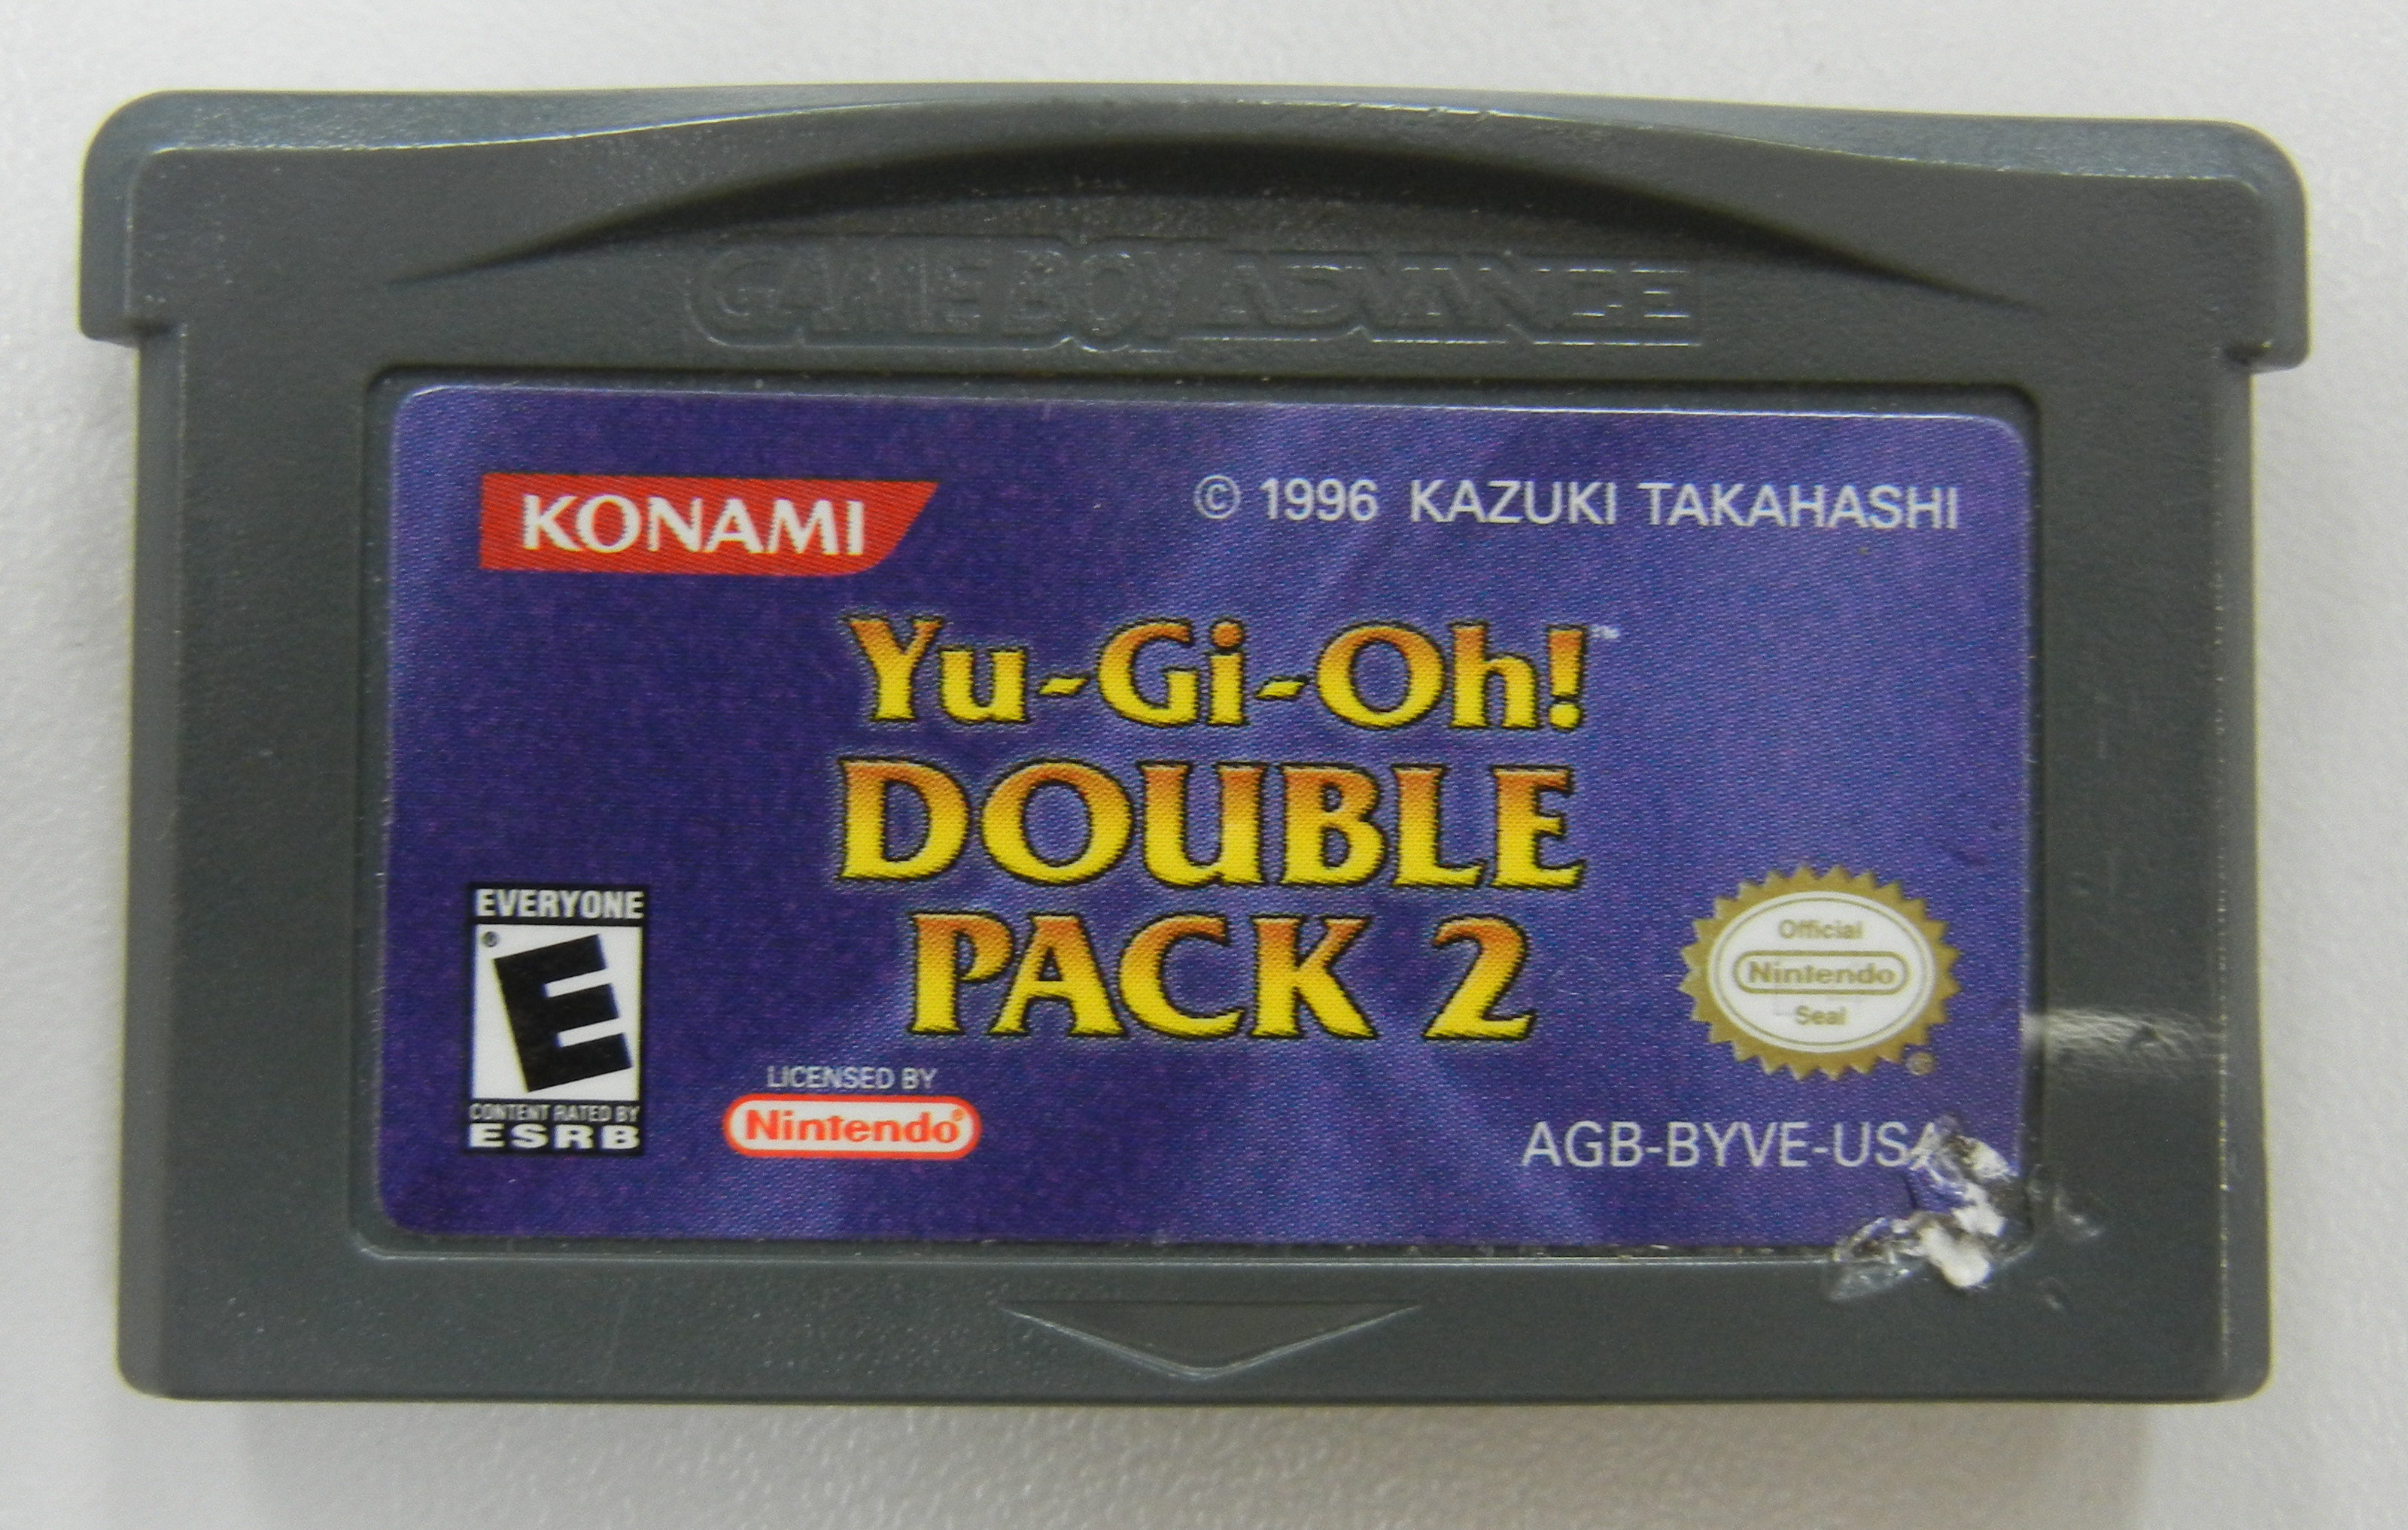 YU-GI-OH DOUBLE PACK 2  - GAMEBOY ADVANCE GAME